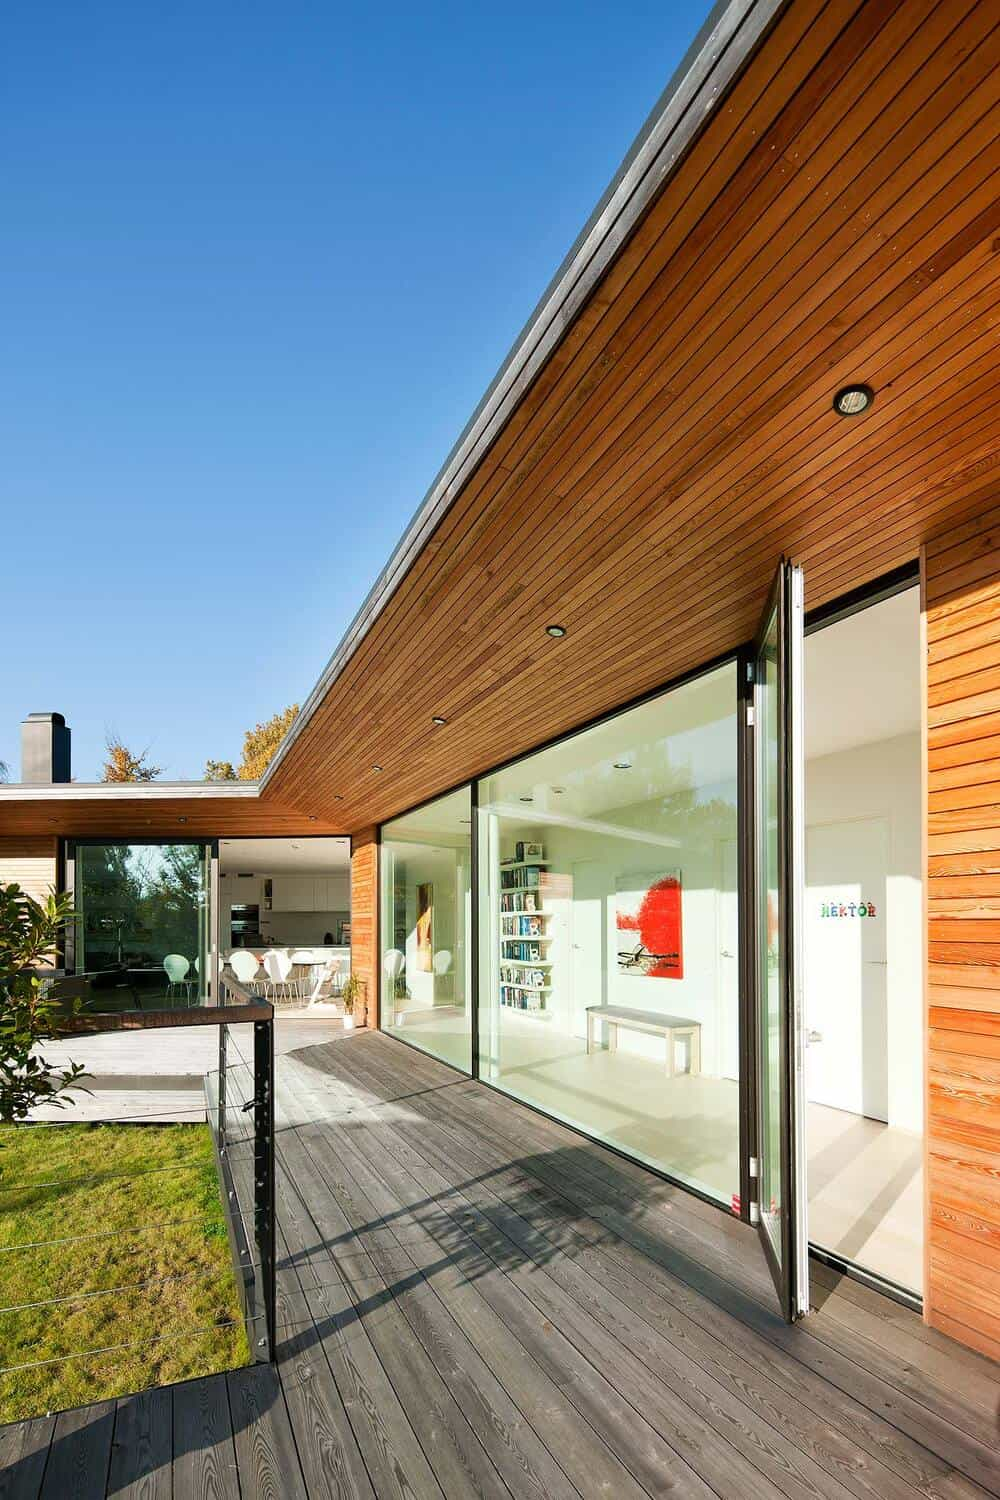 The elevated wooden deck patio that runs on the side of the house is topped with a wooden ceiling and wall that makes the glass wall stand out.